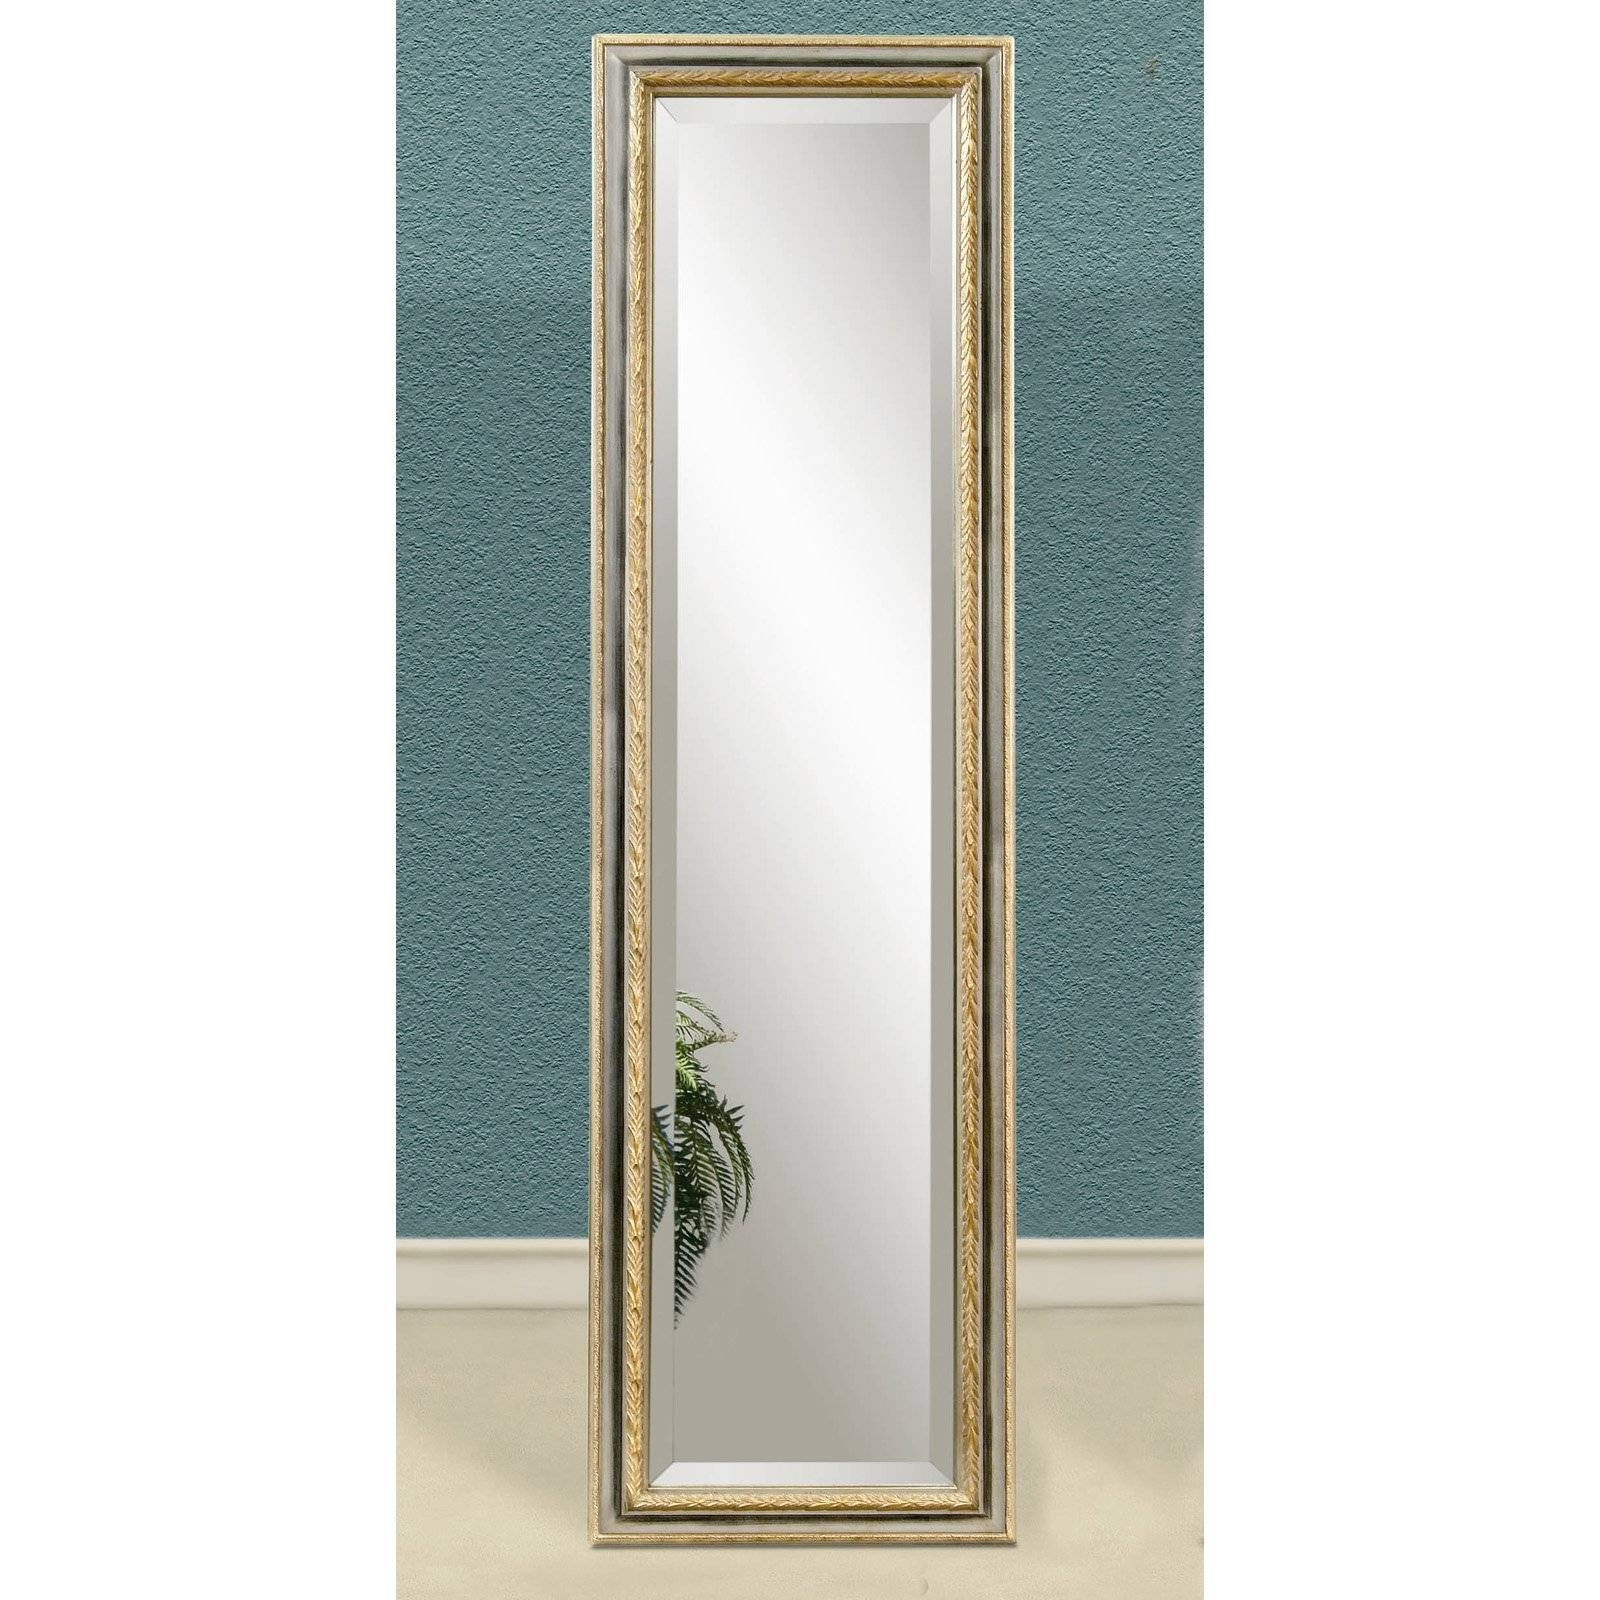 floor leaner frames brown copyright tuscany mirror products frame dark floors gold west full framed